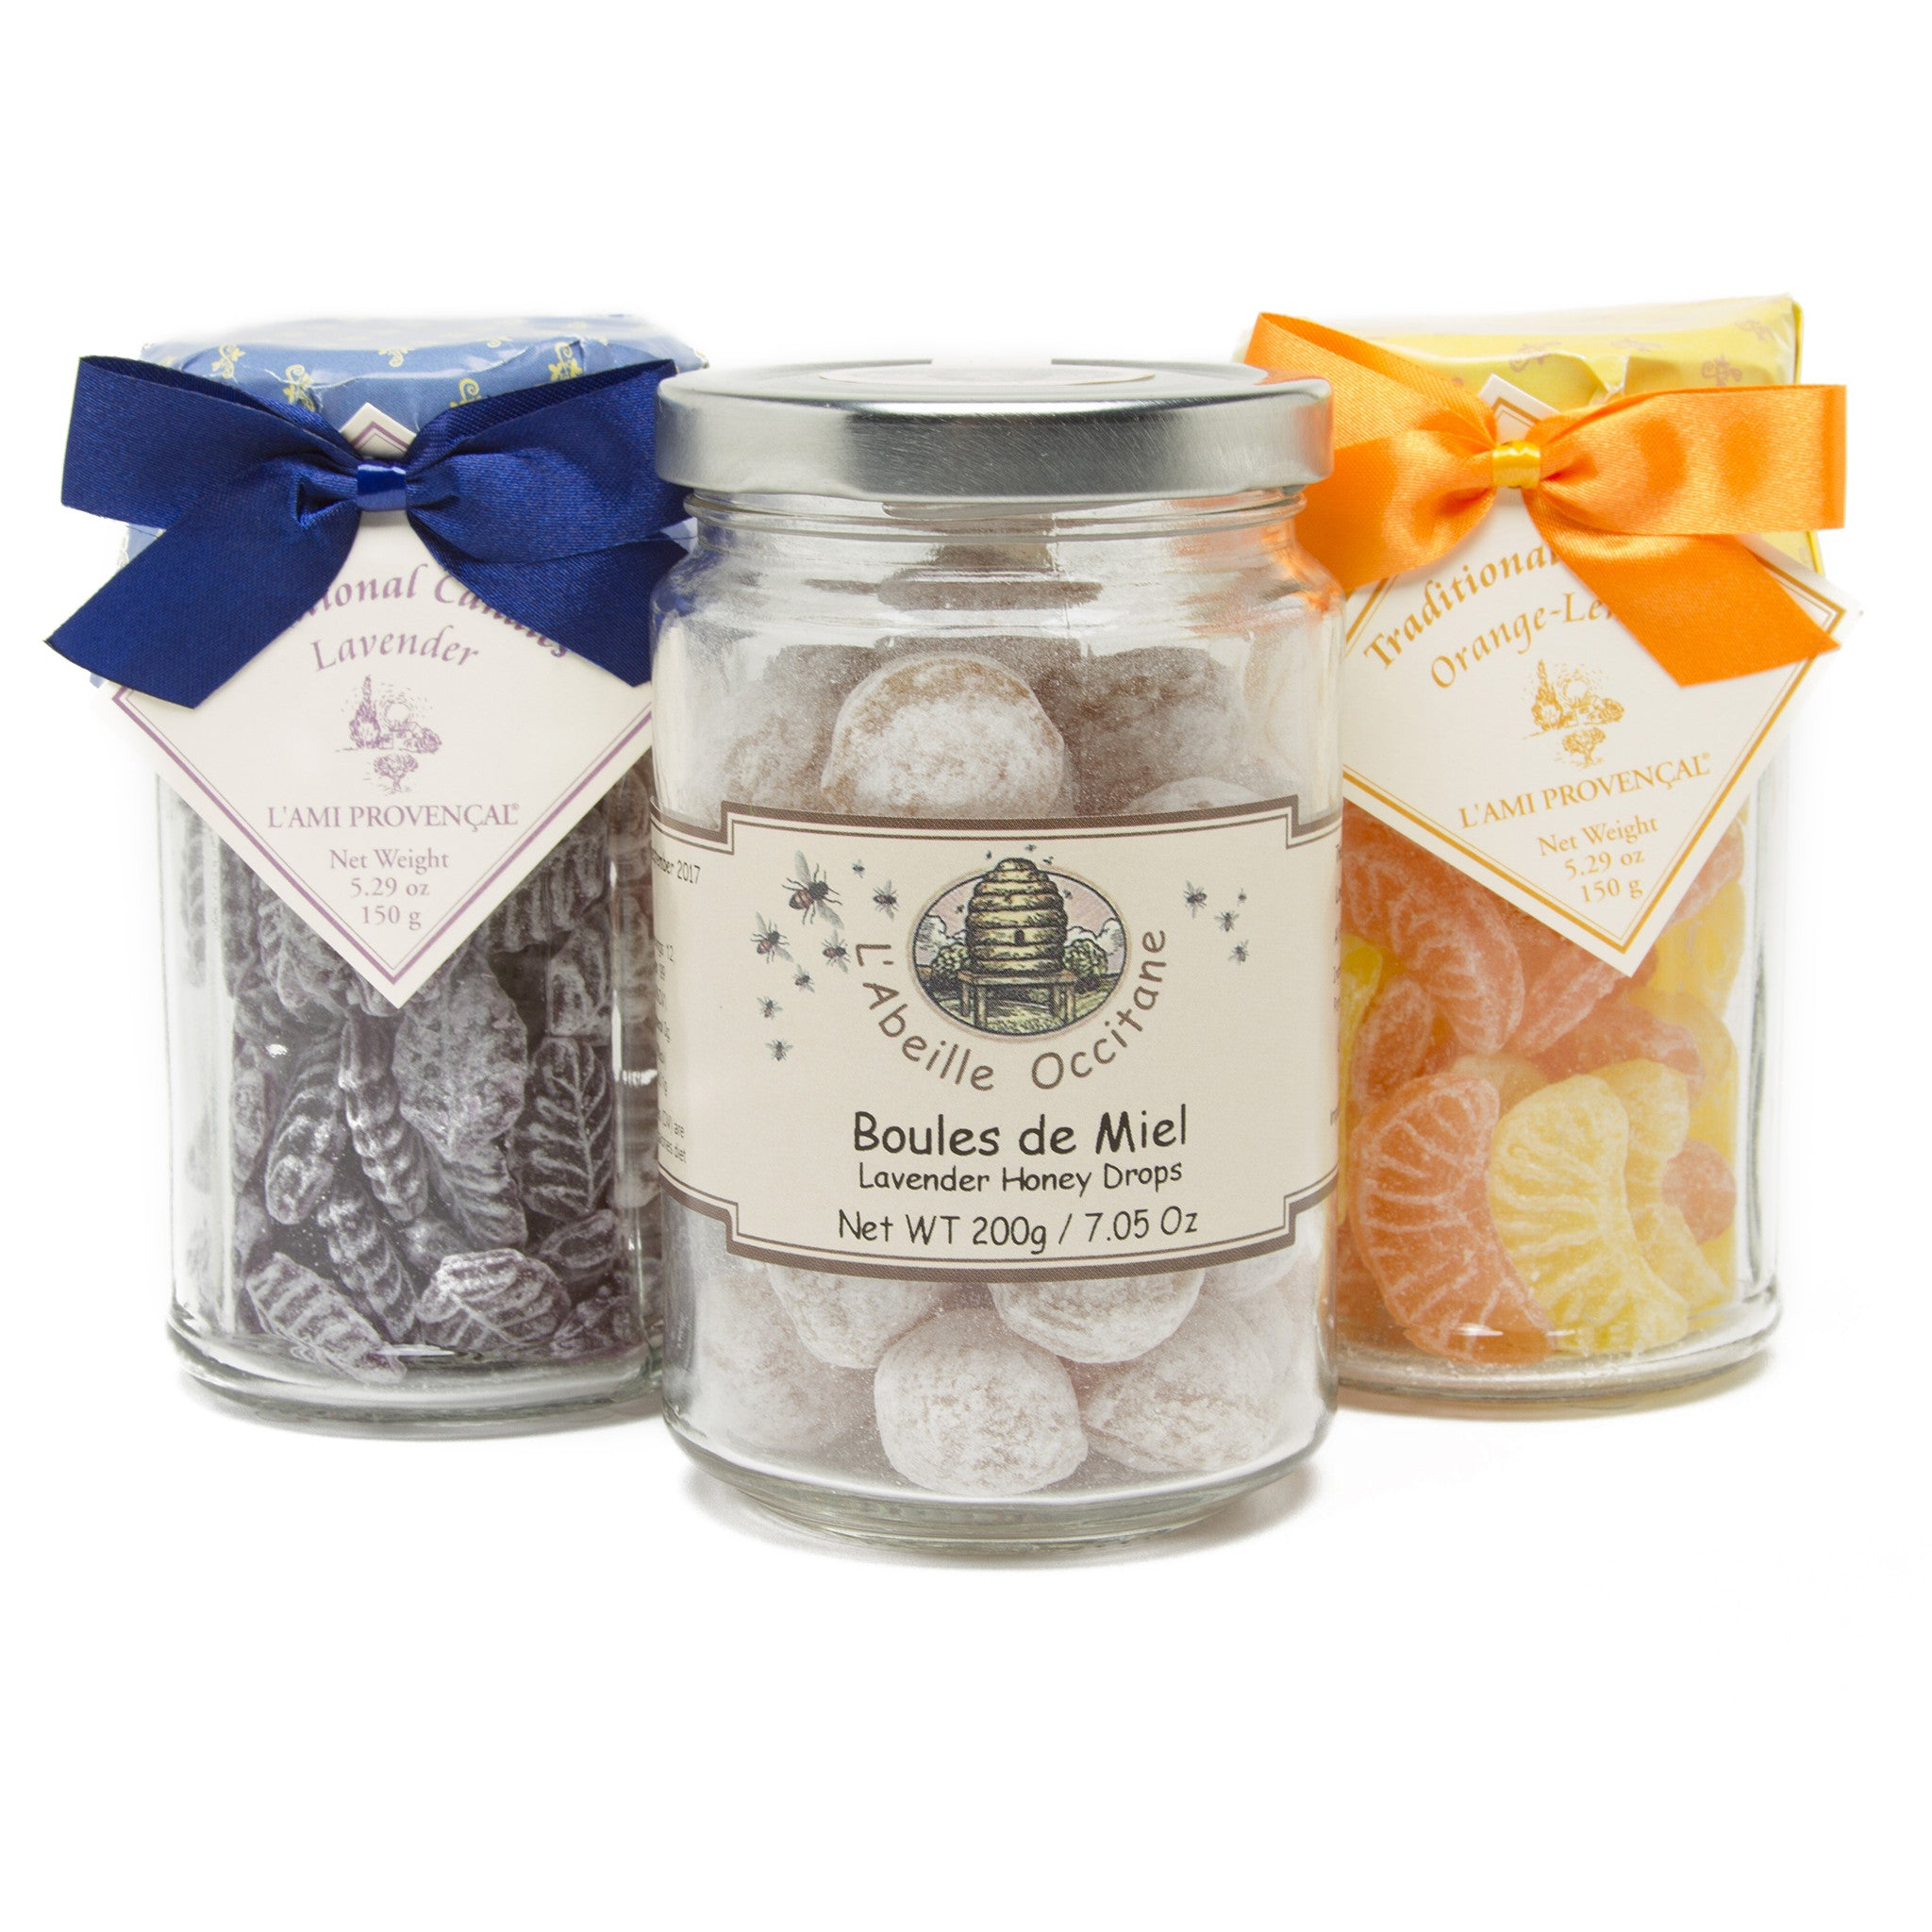 Gift Set - Candies from Provence, France – The Getty Store